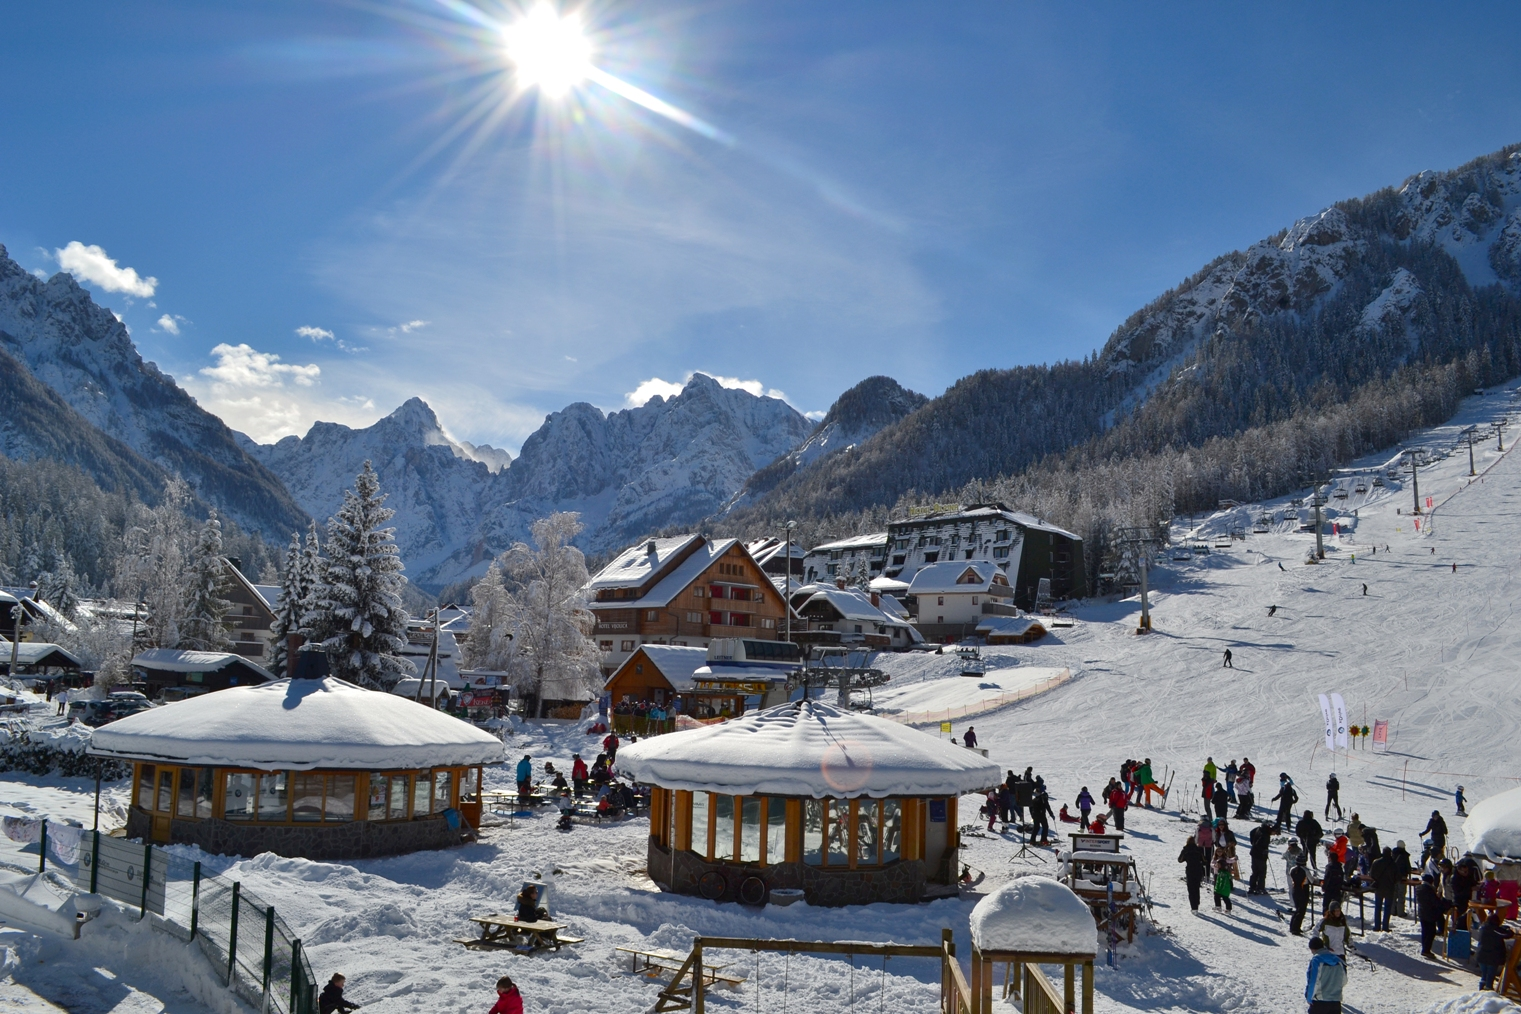 Looking for uncrowded pistes? Head to Eastern Europe to save on costs . Photo: Gorazd Stražišar